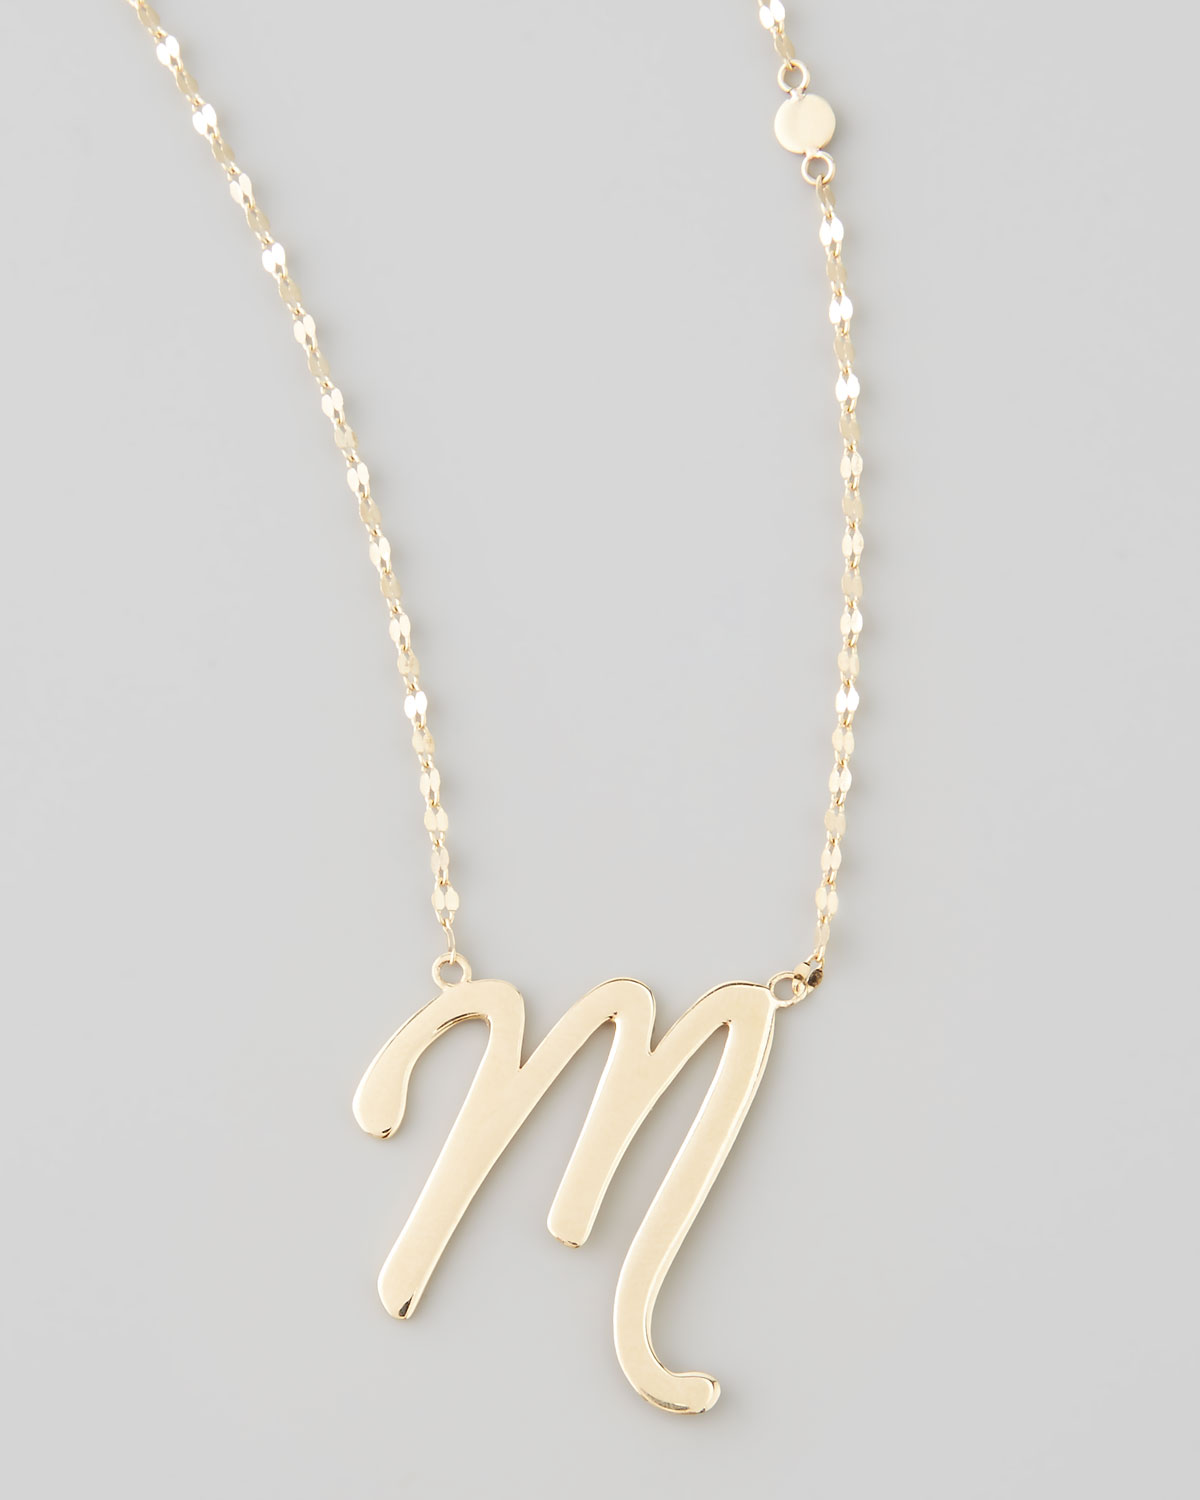 Lyst - Lana Jewelry 14k Gold Letter Necklace M in Metallic